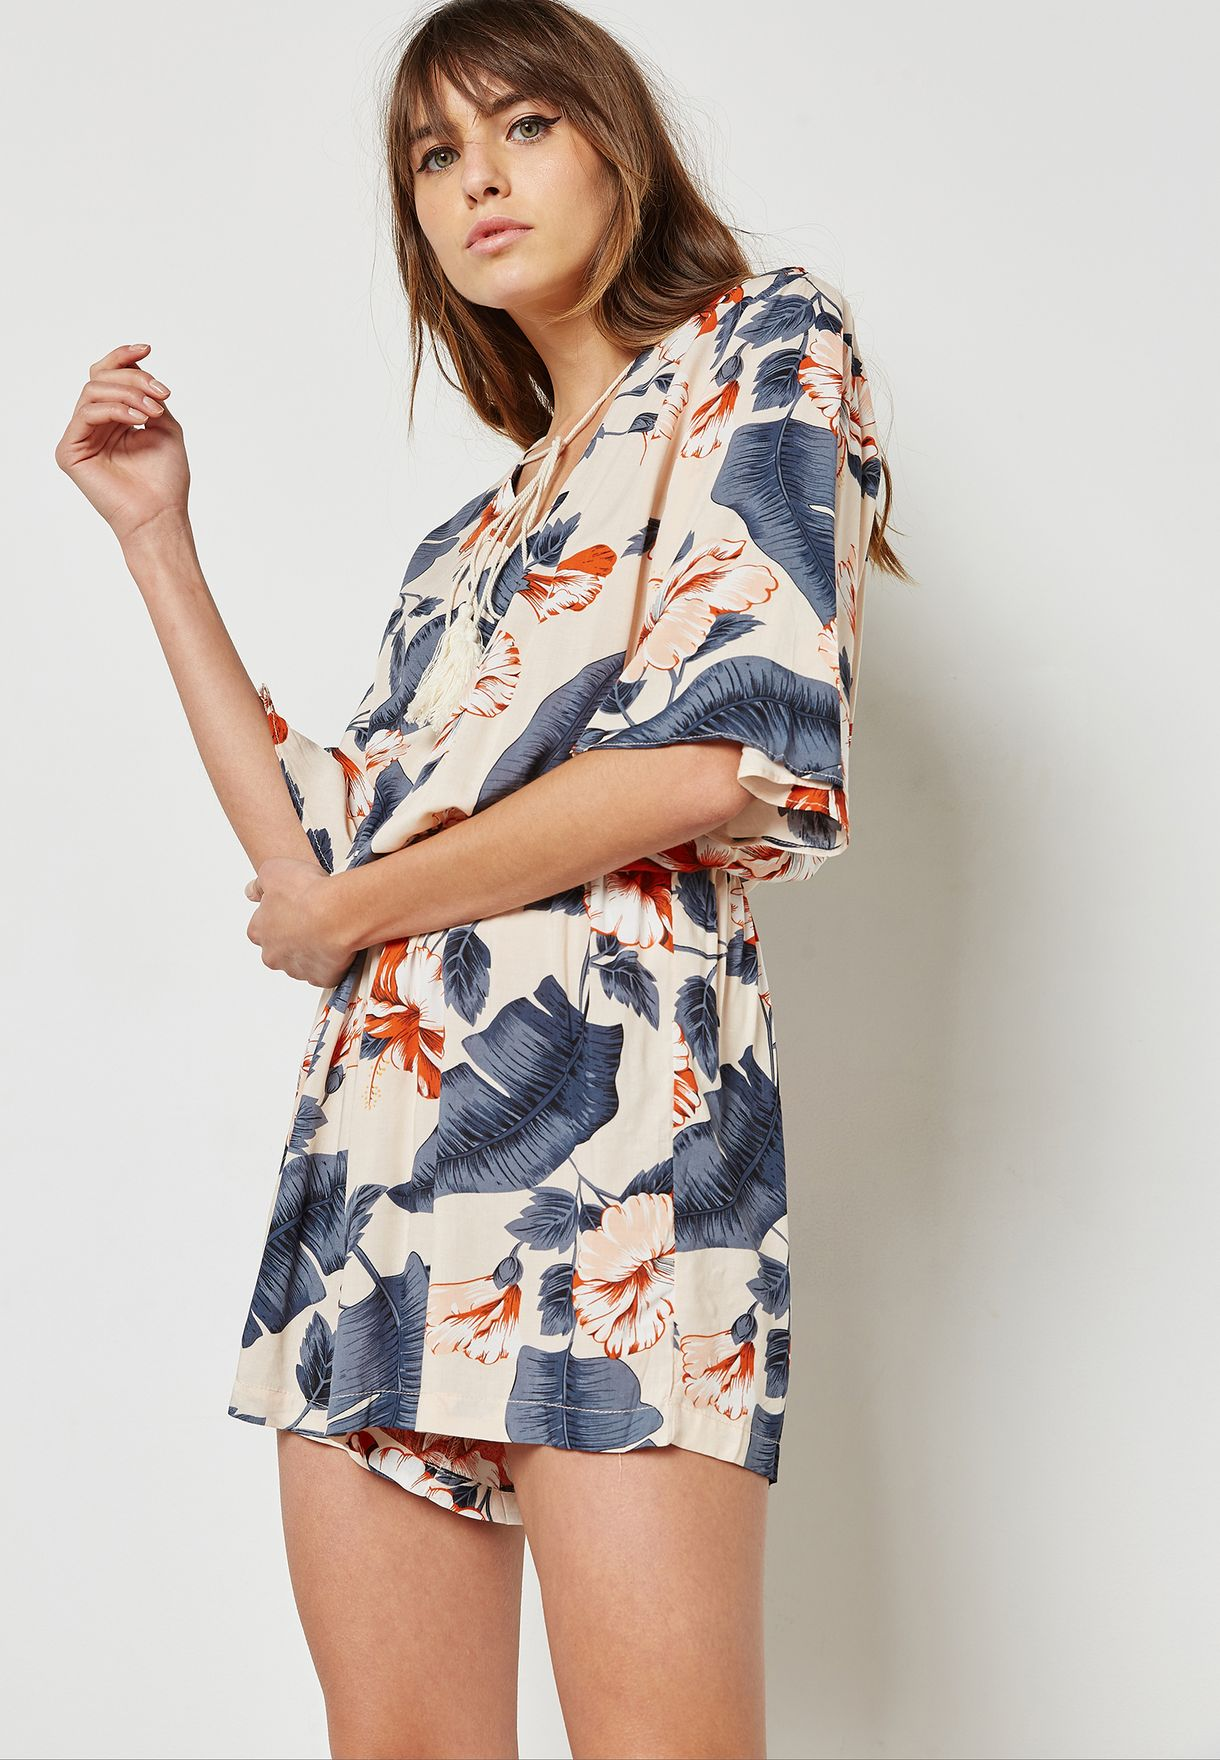 77499a408f Shop Ginger prints Floral Print Tassel Neck Playsuit 1694 for Women in  Qatar - GI121AT22CCF